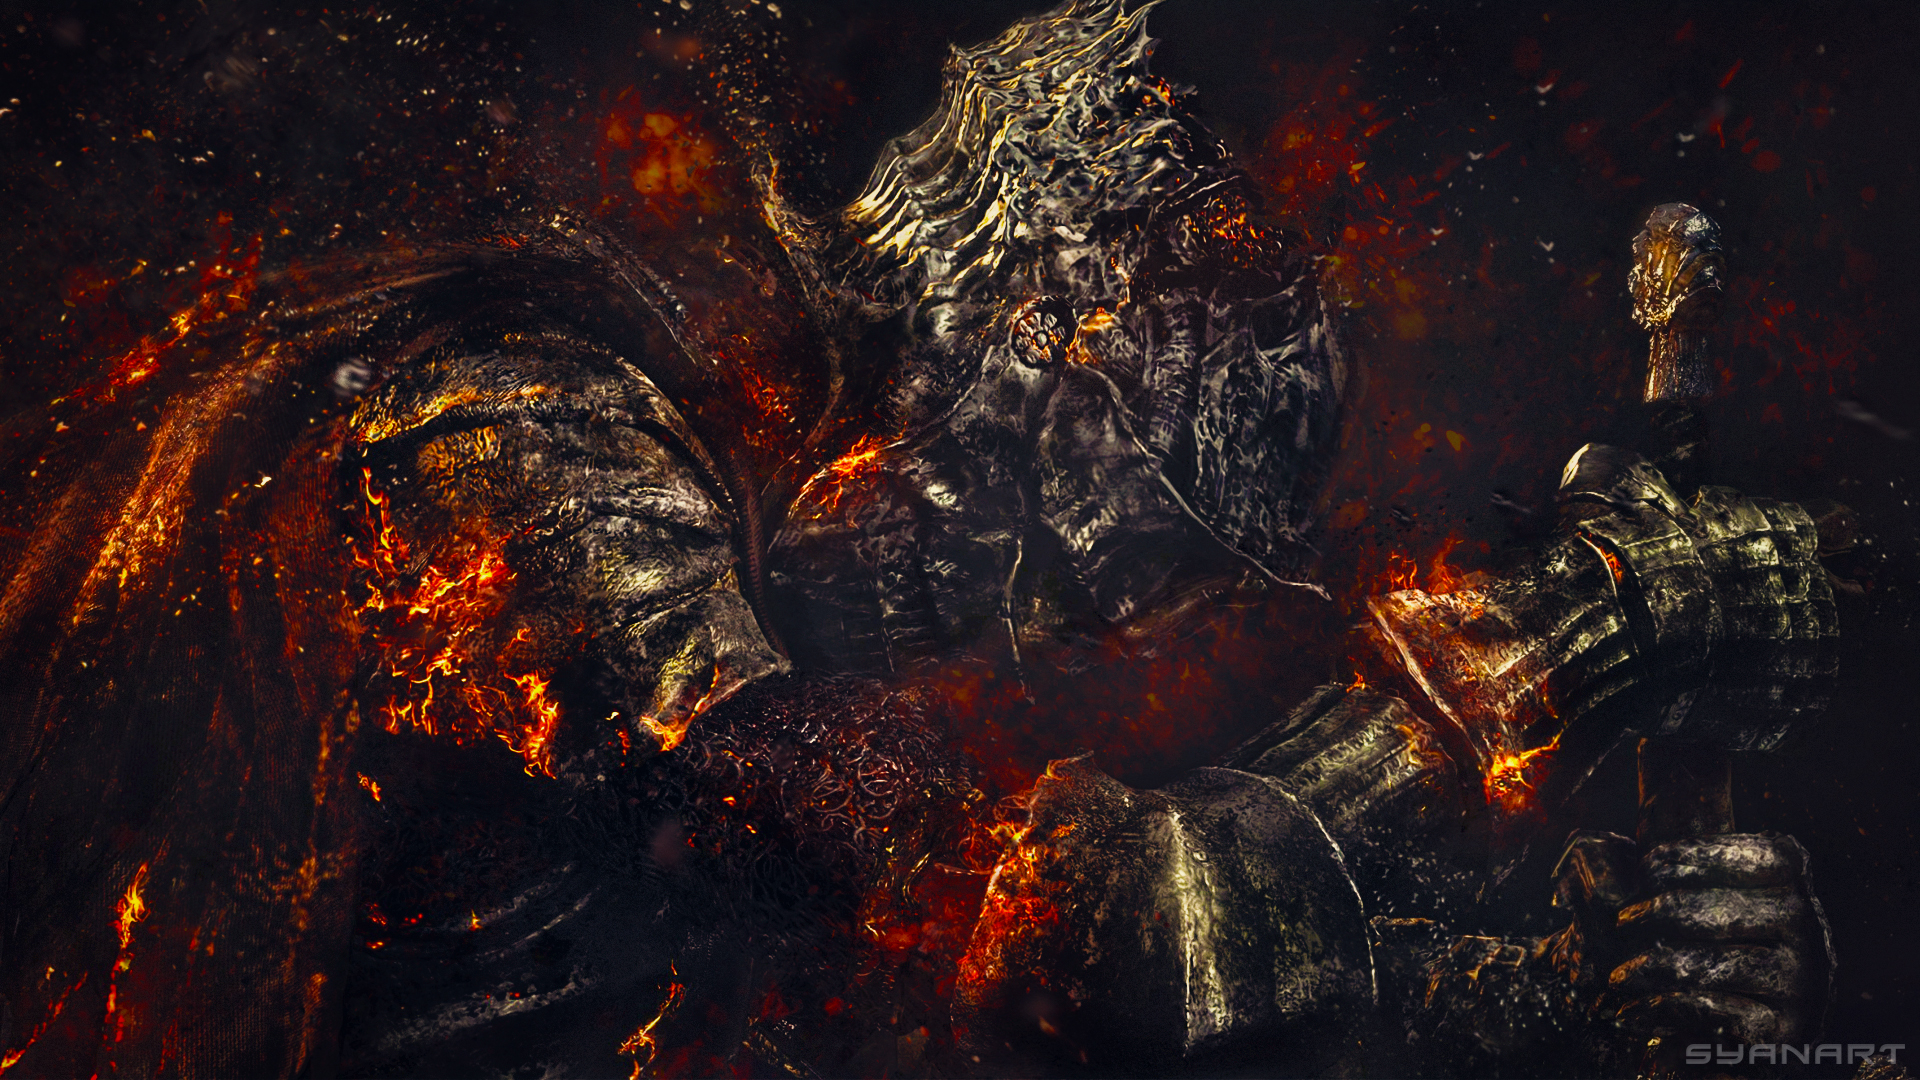 Cute Baby Ultra Hd Wallpapers Dark Souls 3 Wallpapers For Android Gaming Hd Wallpaper